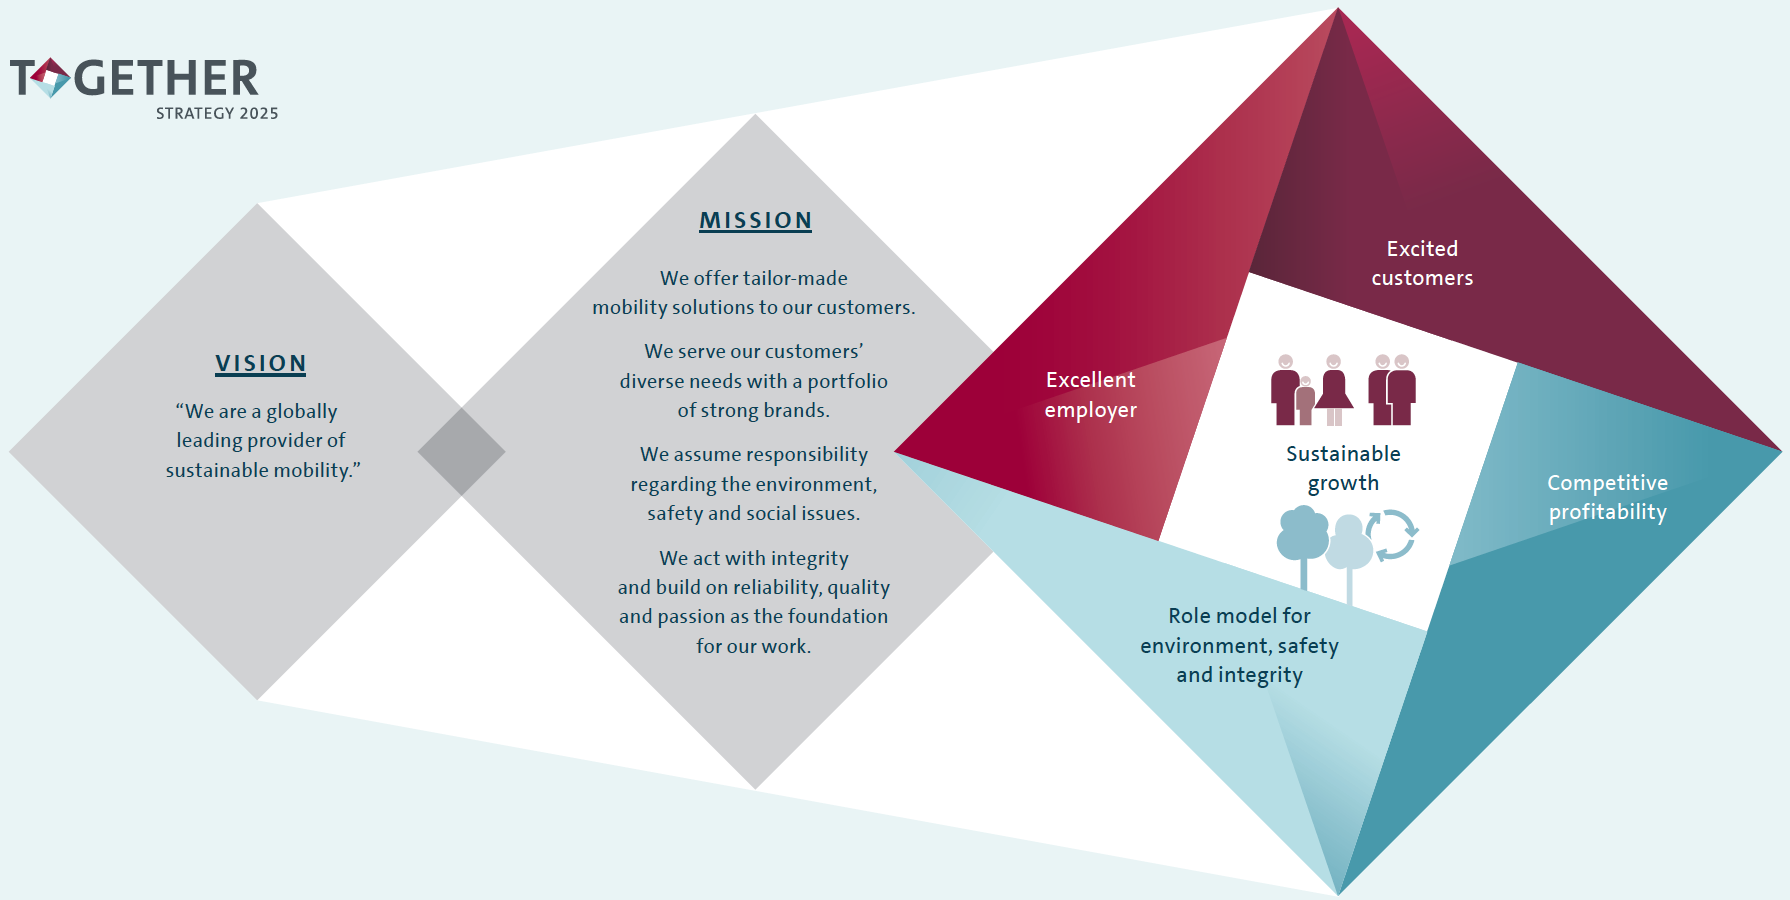 Future Program Together Strategy 2025 Graphic